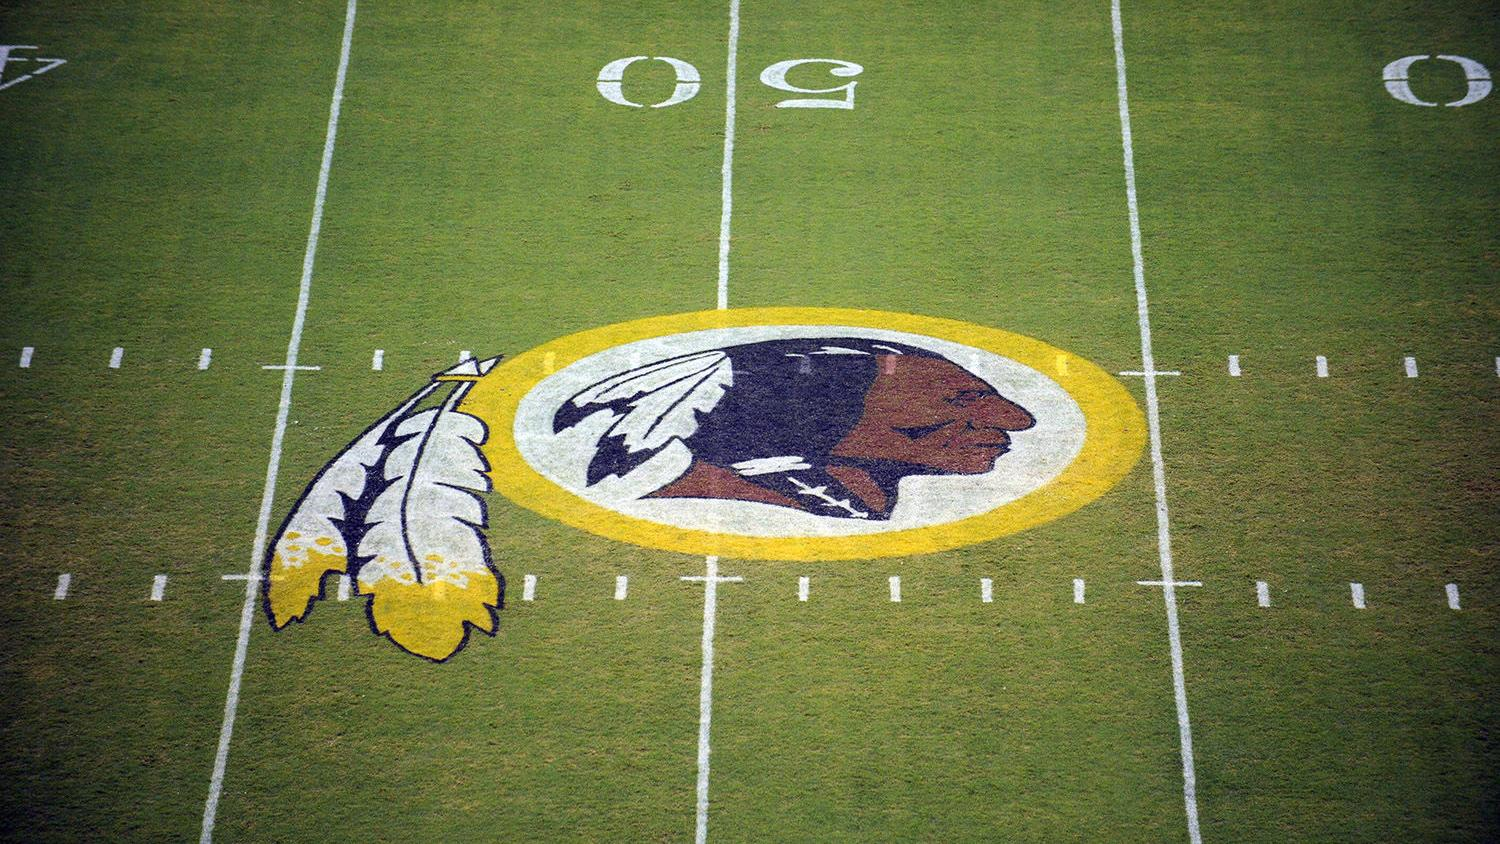 Name Change For Washington S Nfl Team Brings Divided Reaction In Valley News Watch Yakimaherald Com